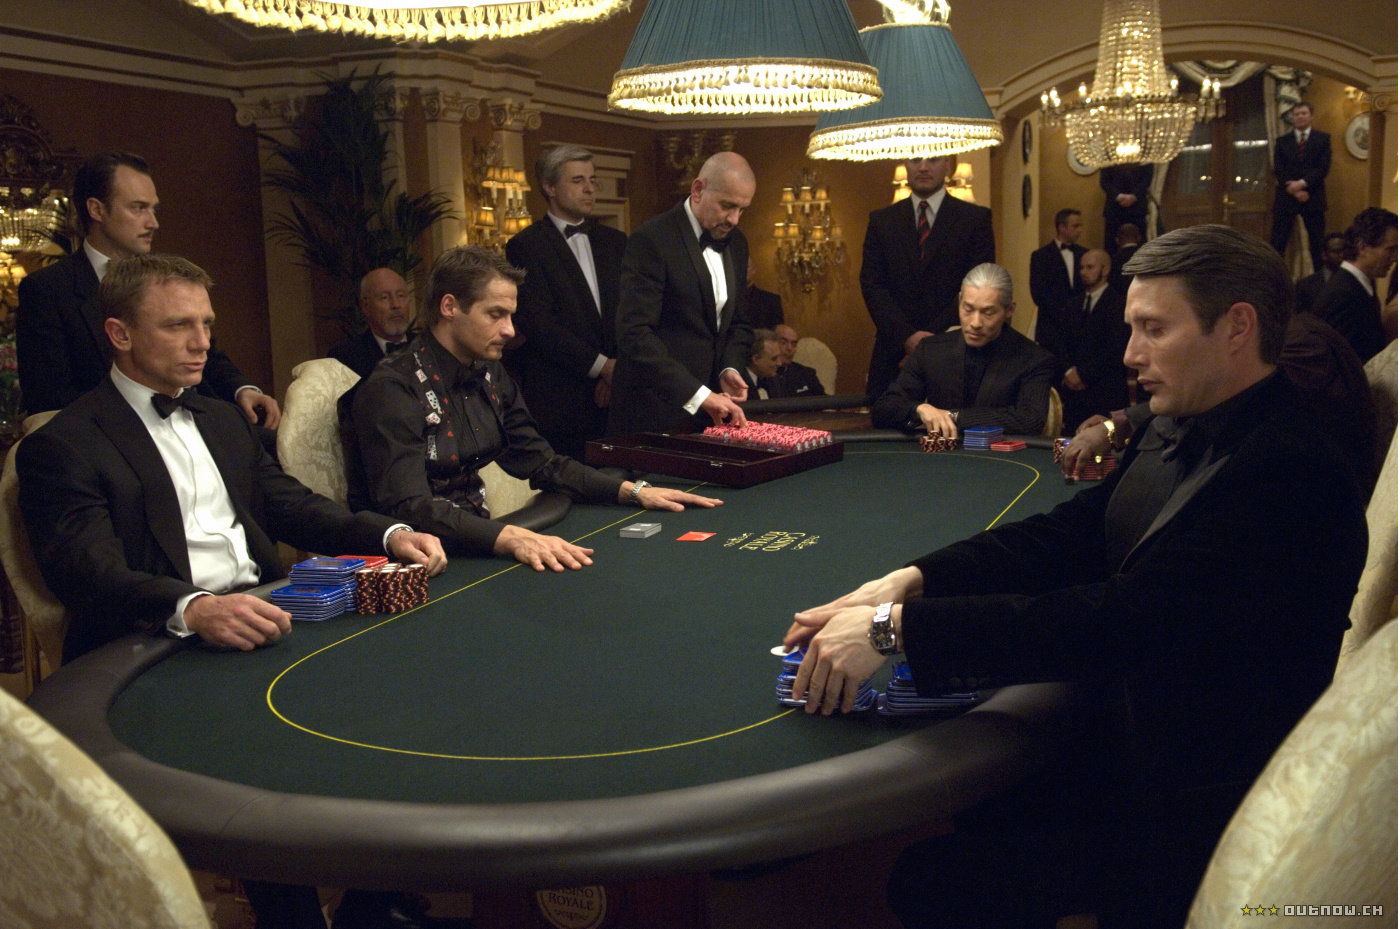 james bond poker game